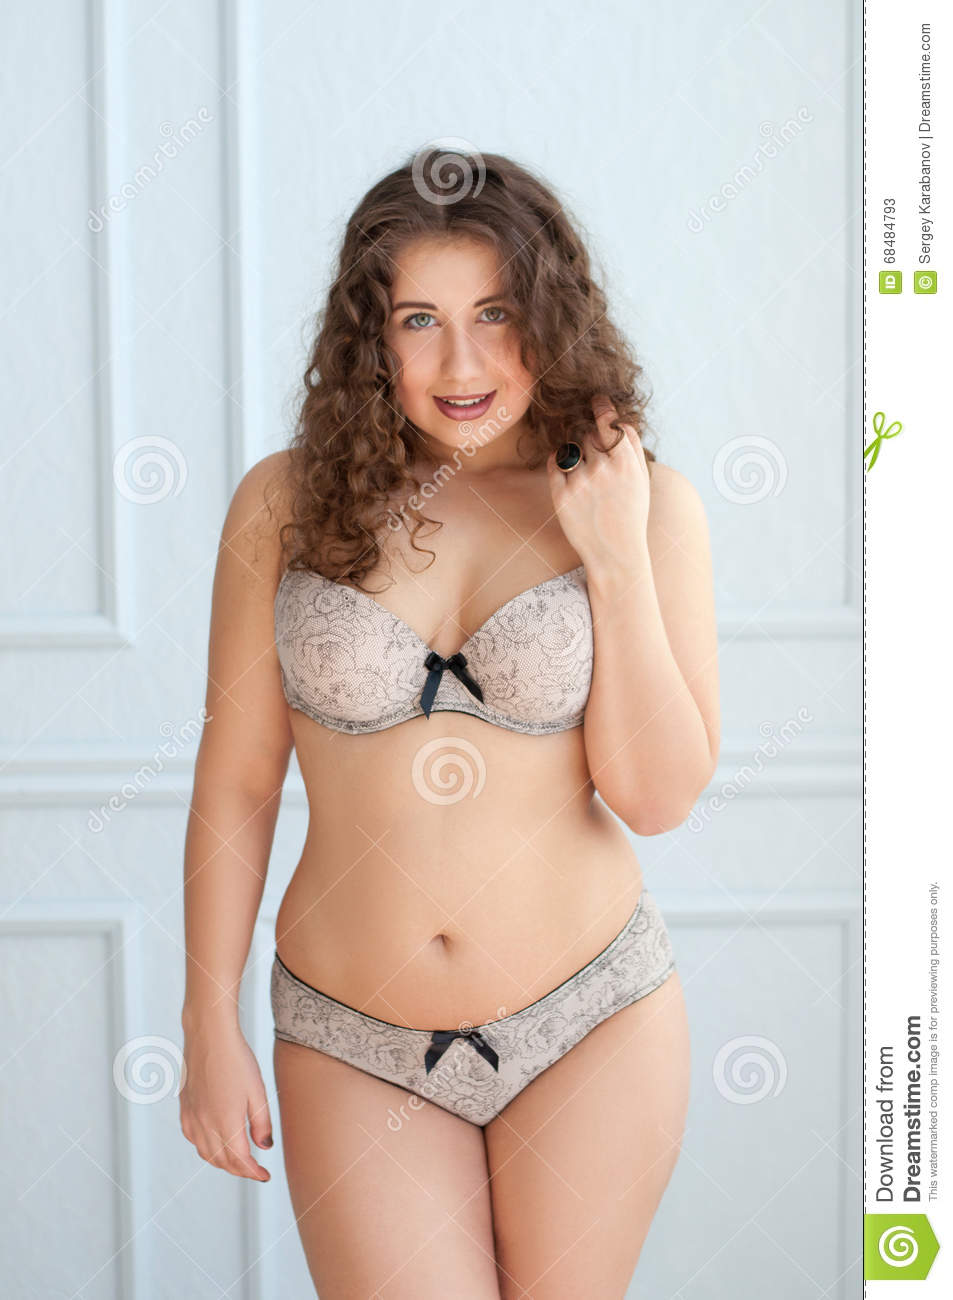 chubby lingerie Shorts curly